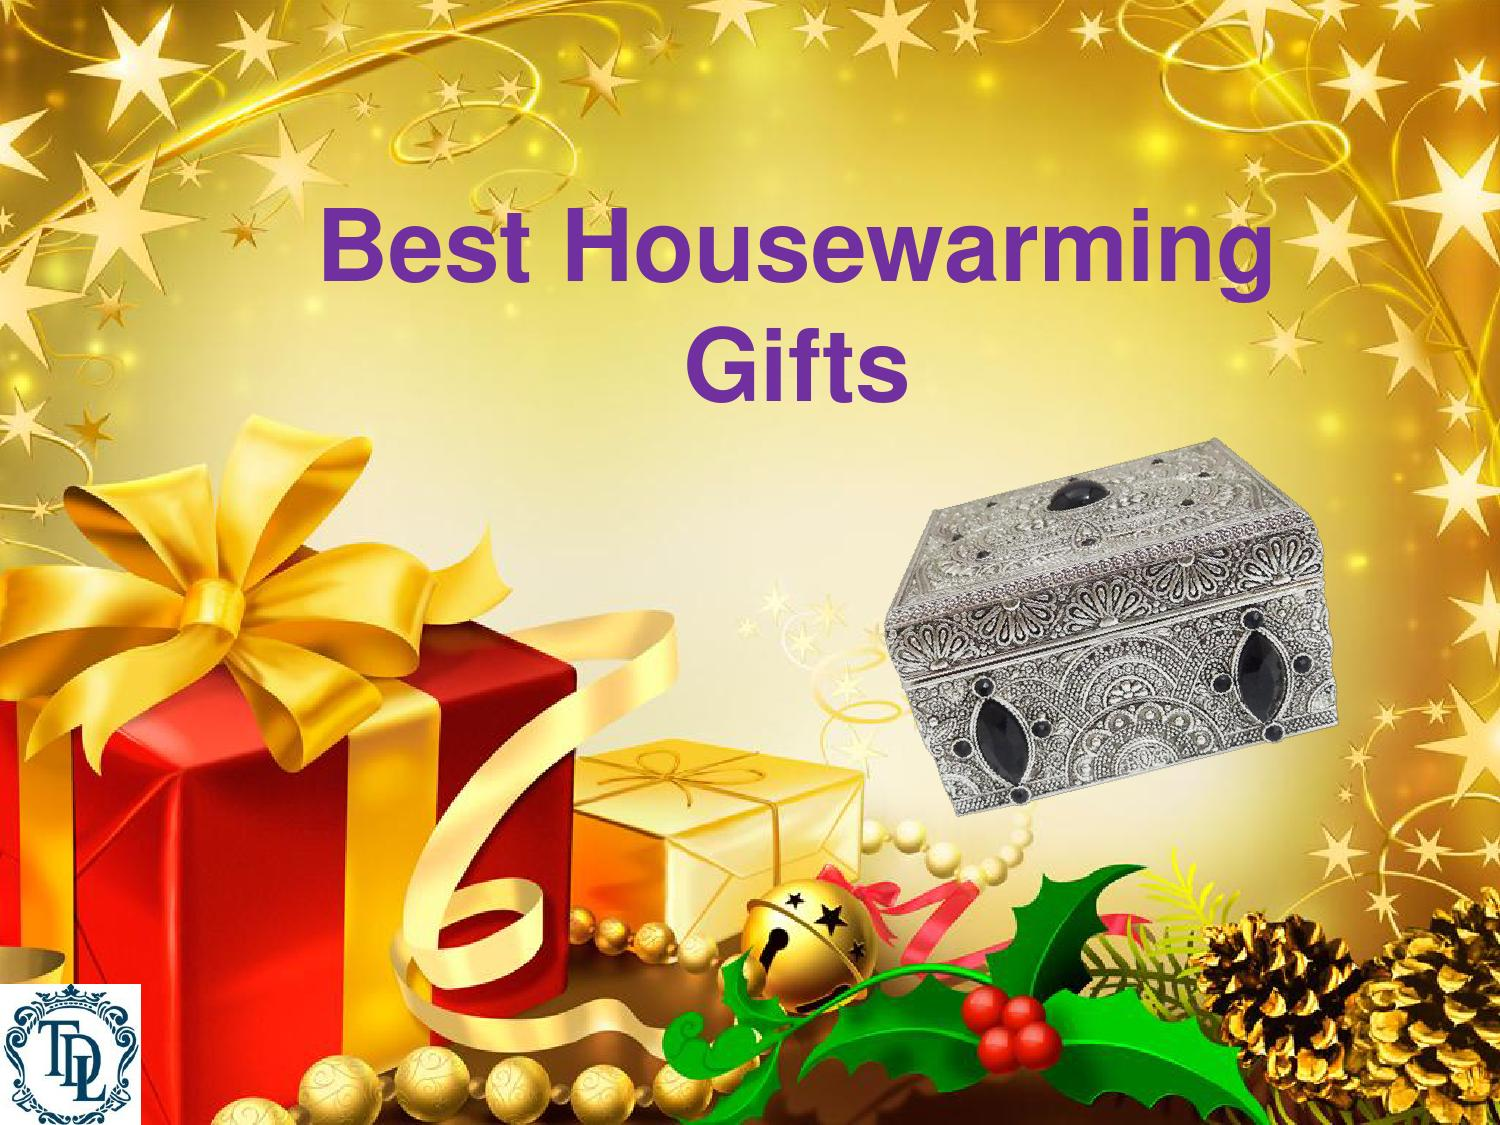 Best housewarming gifts online by the divine luxury issuu for The best housewarming gift